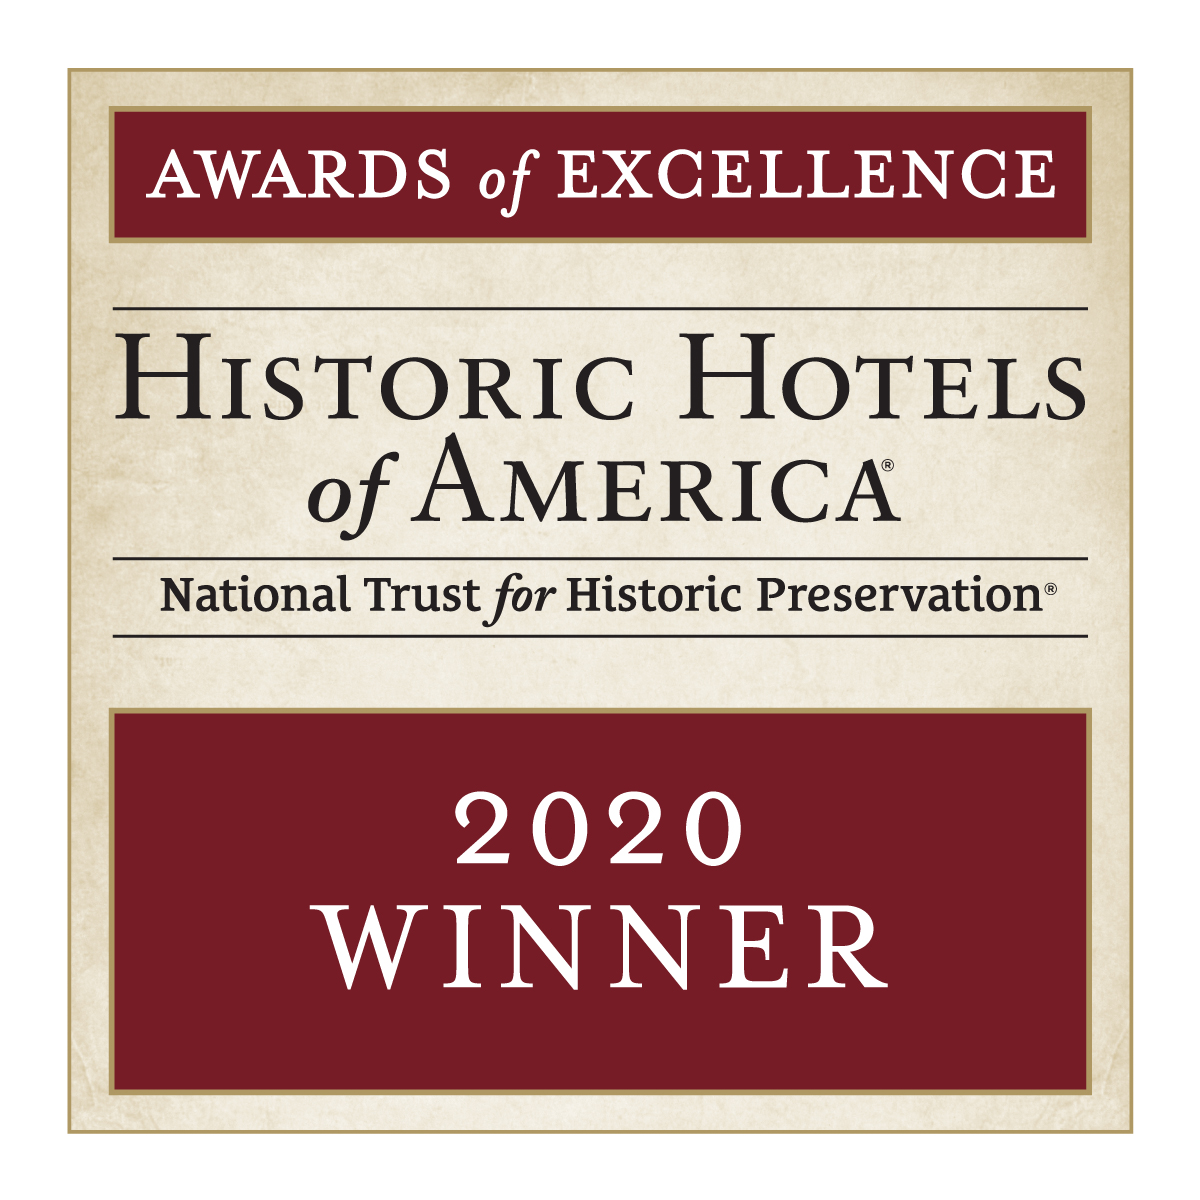 2020 Historic Hotels of America Awards of Excellence